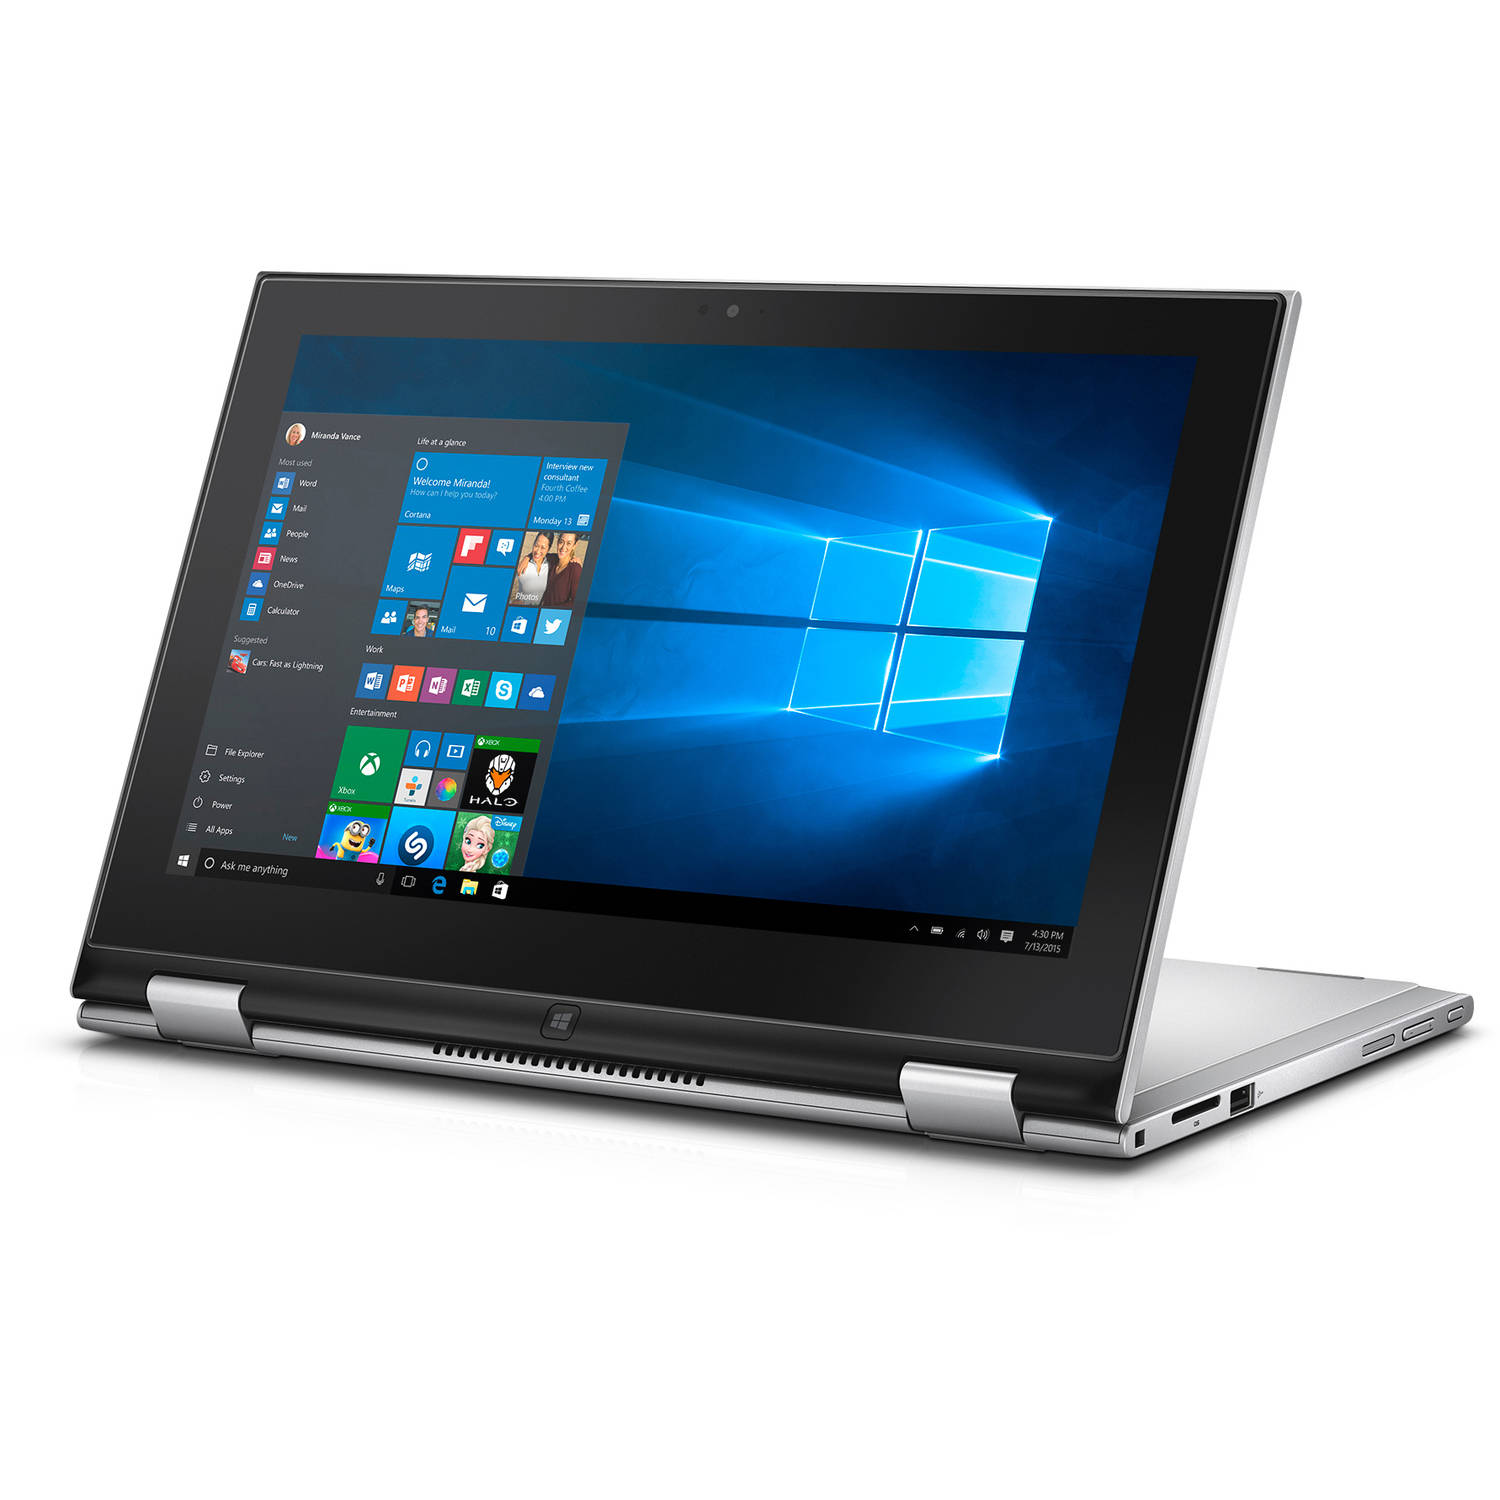 """Dell Silver 11.6"""" Inspiron 3147 2-in-1 Laptop PC with Intel Pentium N3540  Processor, 4GB Memory, touch screen, 500GB Hard Drive and Windows 10 Home  ..."""